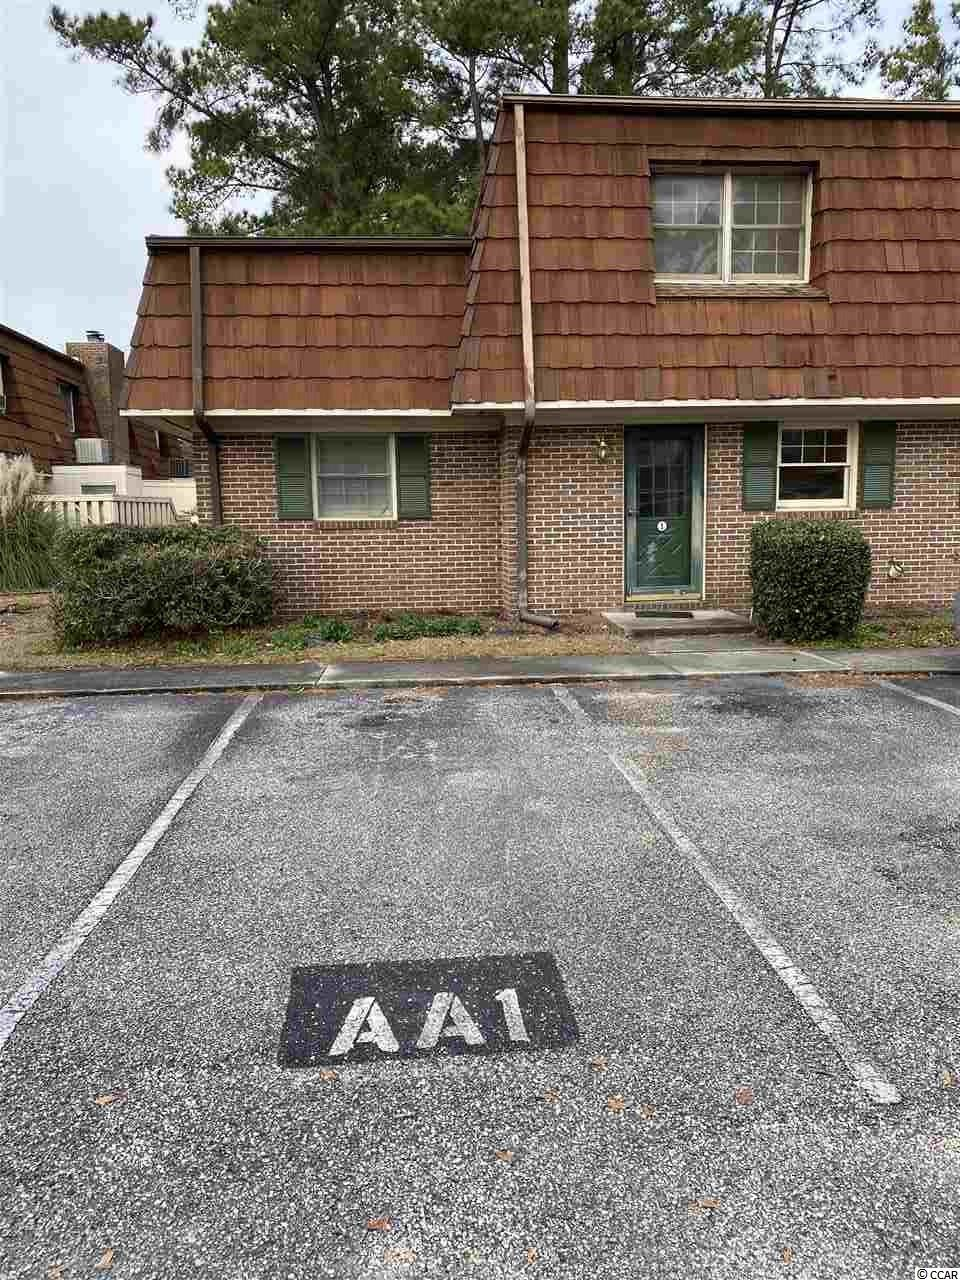 Great opportunity for rental income within walking distance of Coastal Carolina University! Perfect for the college student so close to campus! Huge brick fireplace in great room with laminate flooring. Assigned parking spaces, complex has pool and common areas for grilling and playgrounds. END unit offers larger living space.  All appliances convey including washer/dryer and refrigerator.  Close to beaches and shopping.